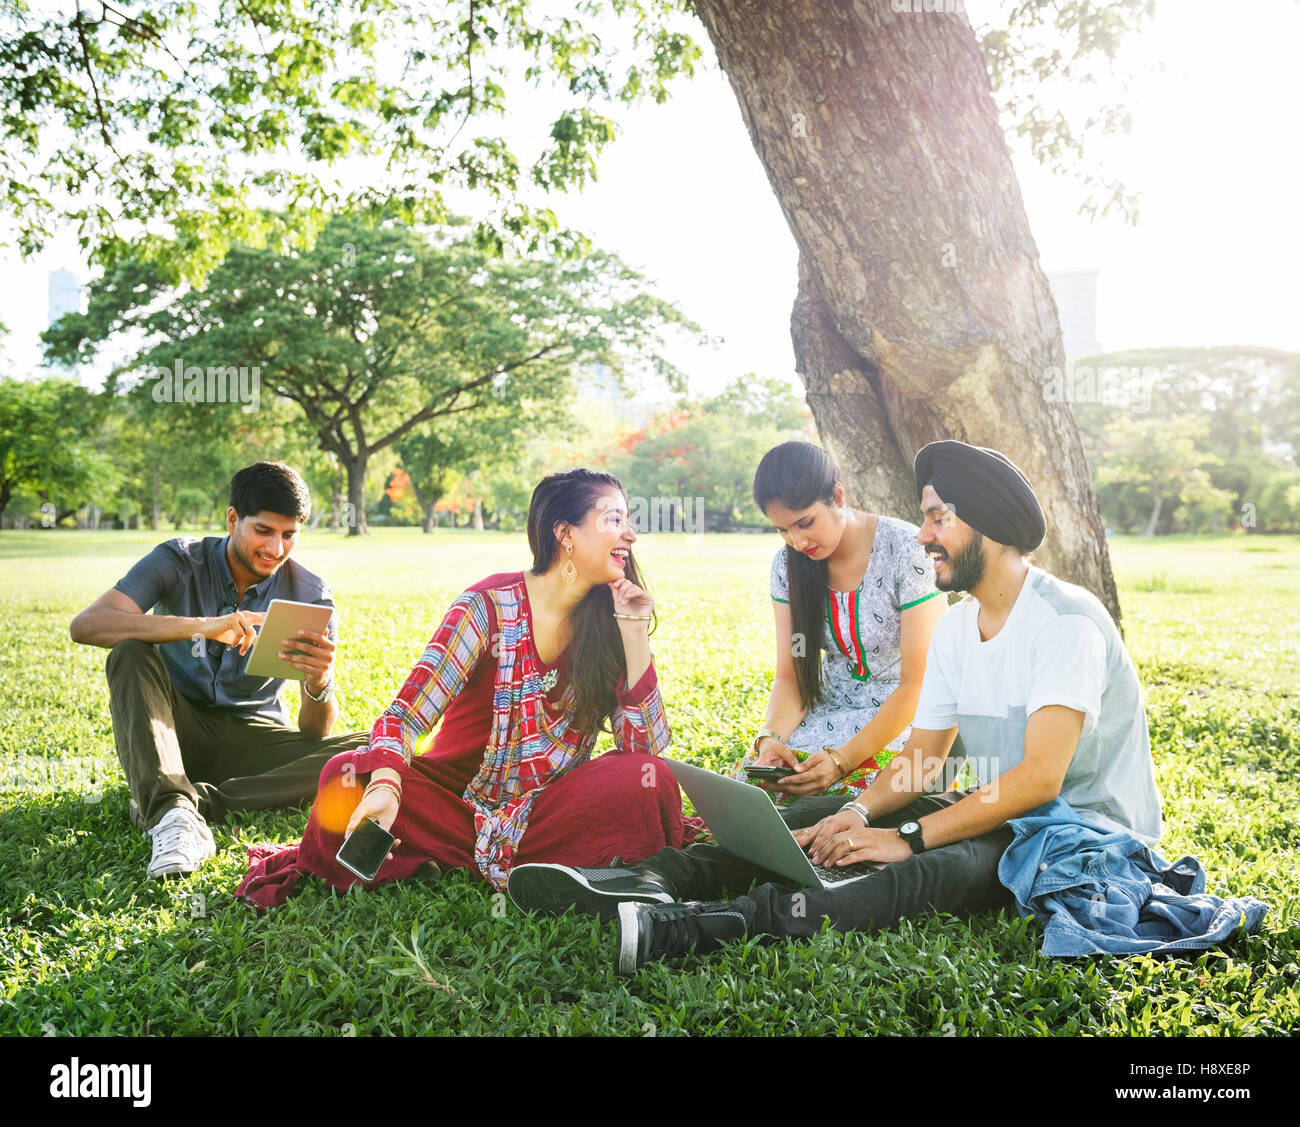 Friends Relaxing Sitting Park Gadgets Concept - Stock Image